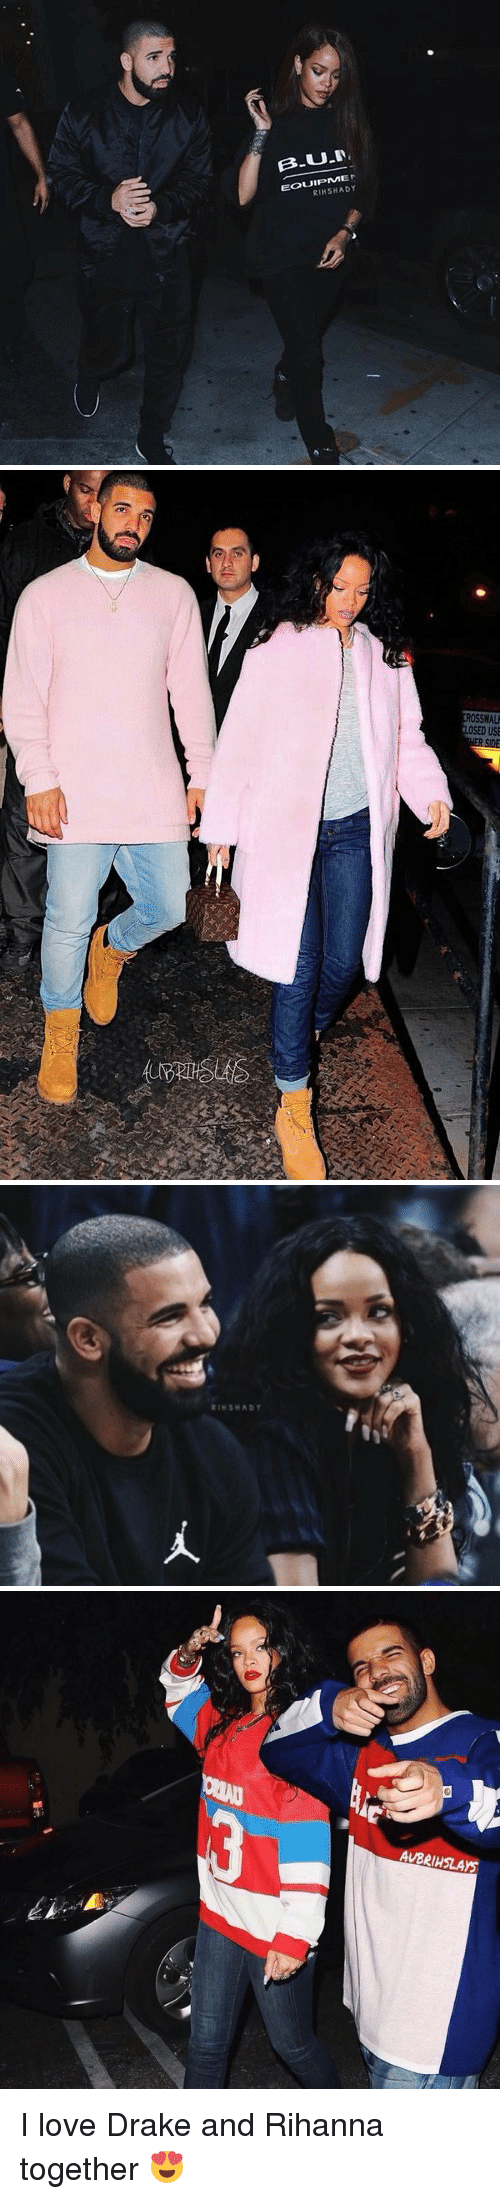 love drake: UT  RIHSHADY   RIH SHADY   AUBeiHSLAYS I love Drake and Rihanna together 😍